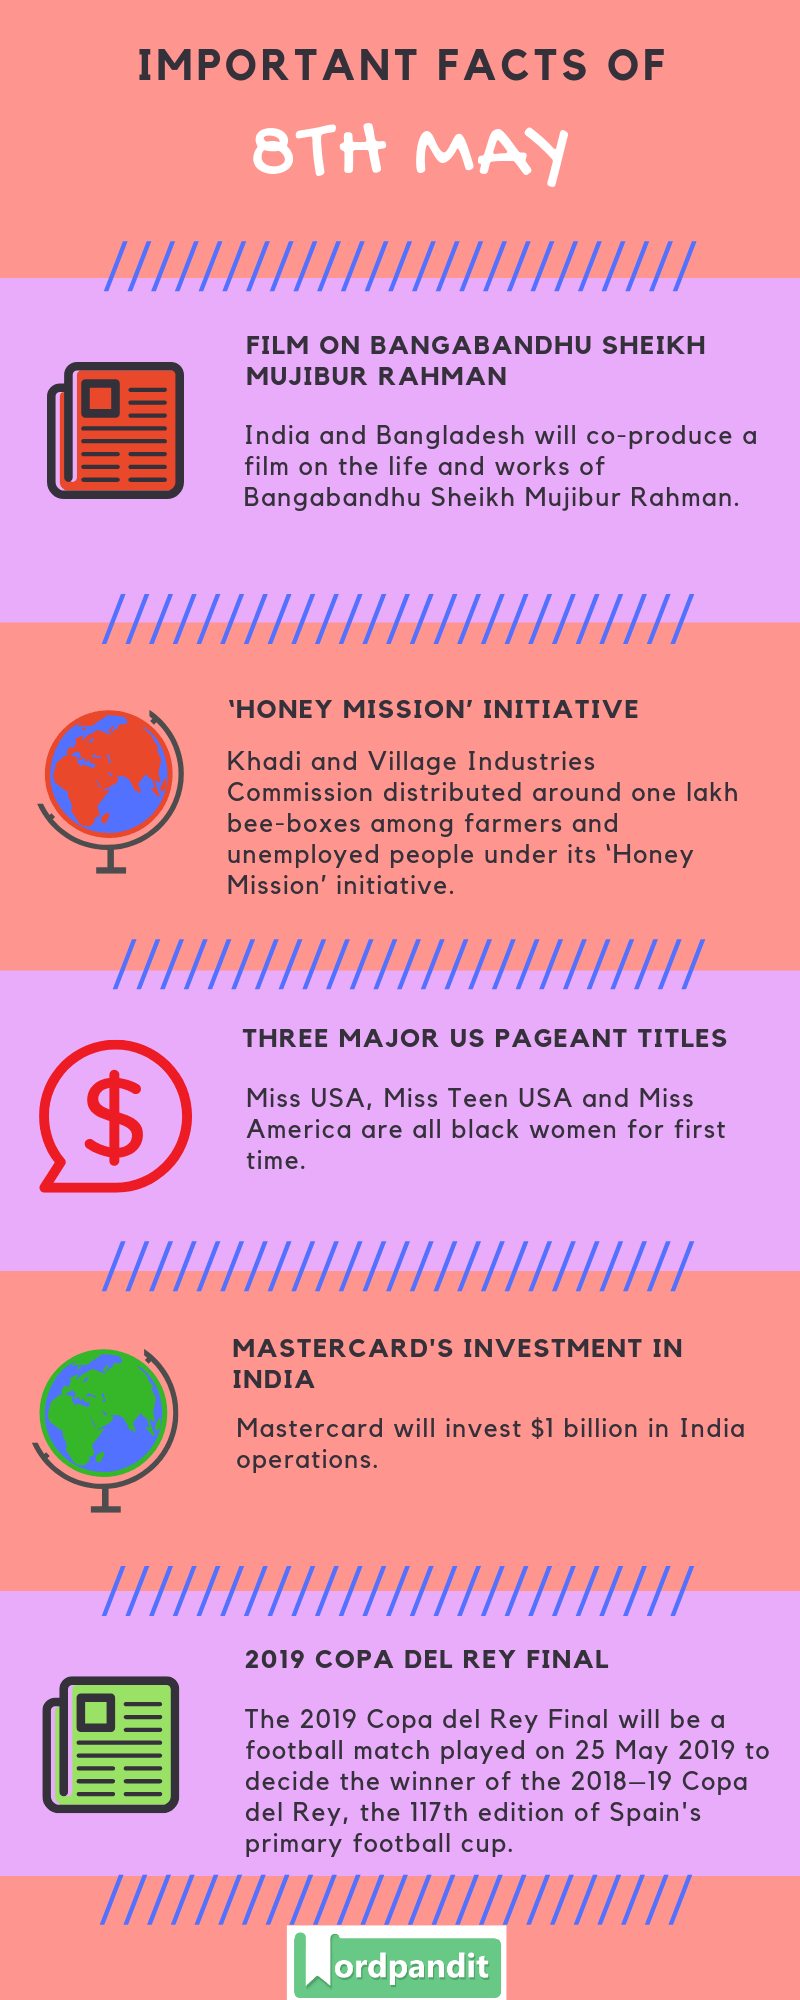 Daily Current Affairs 8 May 2019 Current Affairs Quiz 8 May 2019 Current Affairs Infographic